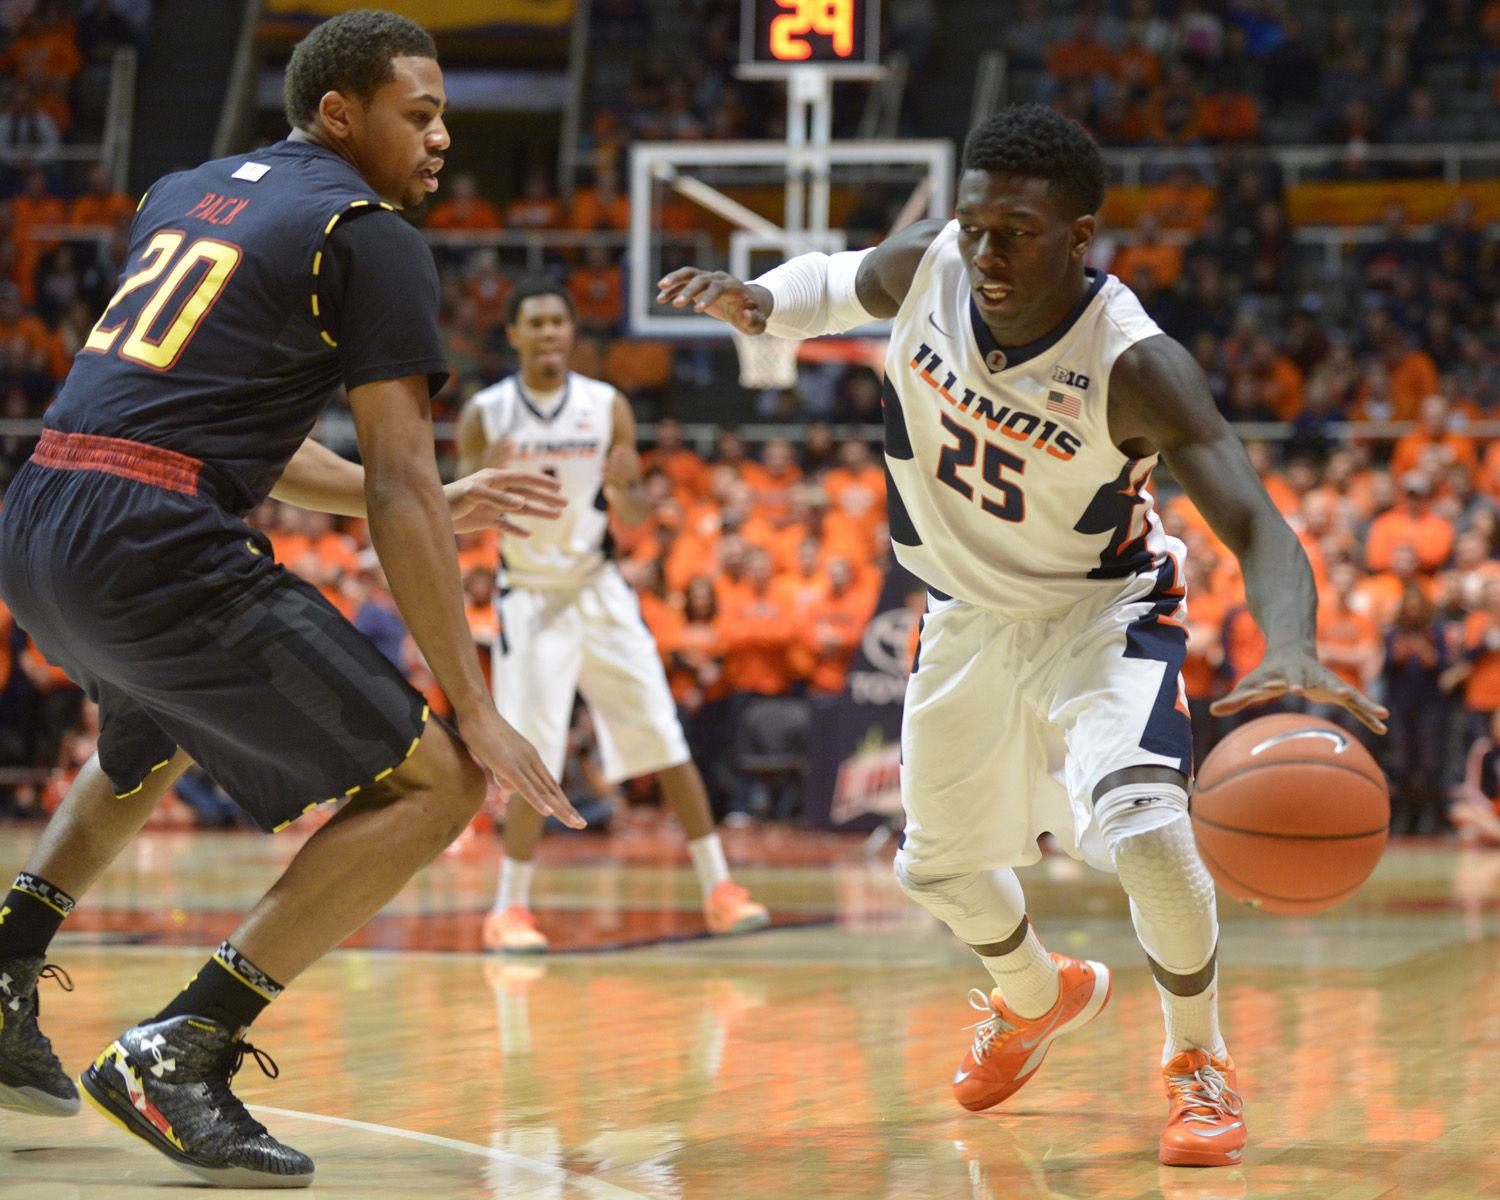 %3Cp%3EIllinois+picked+up+a+big+road+win+at+Northwestern%C2%A0Wednesday%2C+as+Kendrick+Nunn+and+Aaron+Cosby+combined+for+44+of+the+Illini%E2%80%99+72+points.+The+Illini+took+care+of+the+ball+extremely+well+and+shot+nearly+perfect+from+the+free+throw+line%2C+and+it+helped+propel+them+to+their+second+conference+win.%C2%A0%3C%2Fp%3E